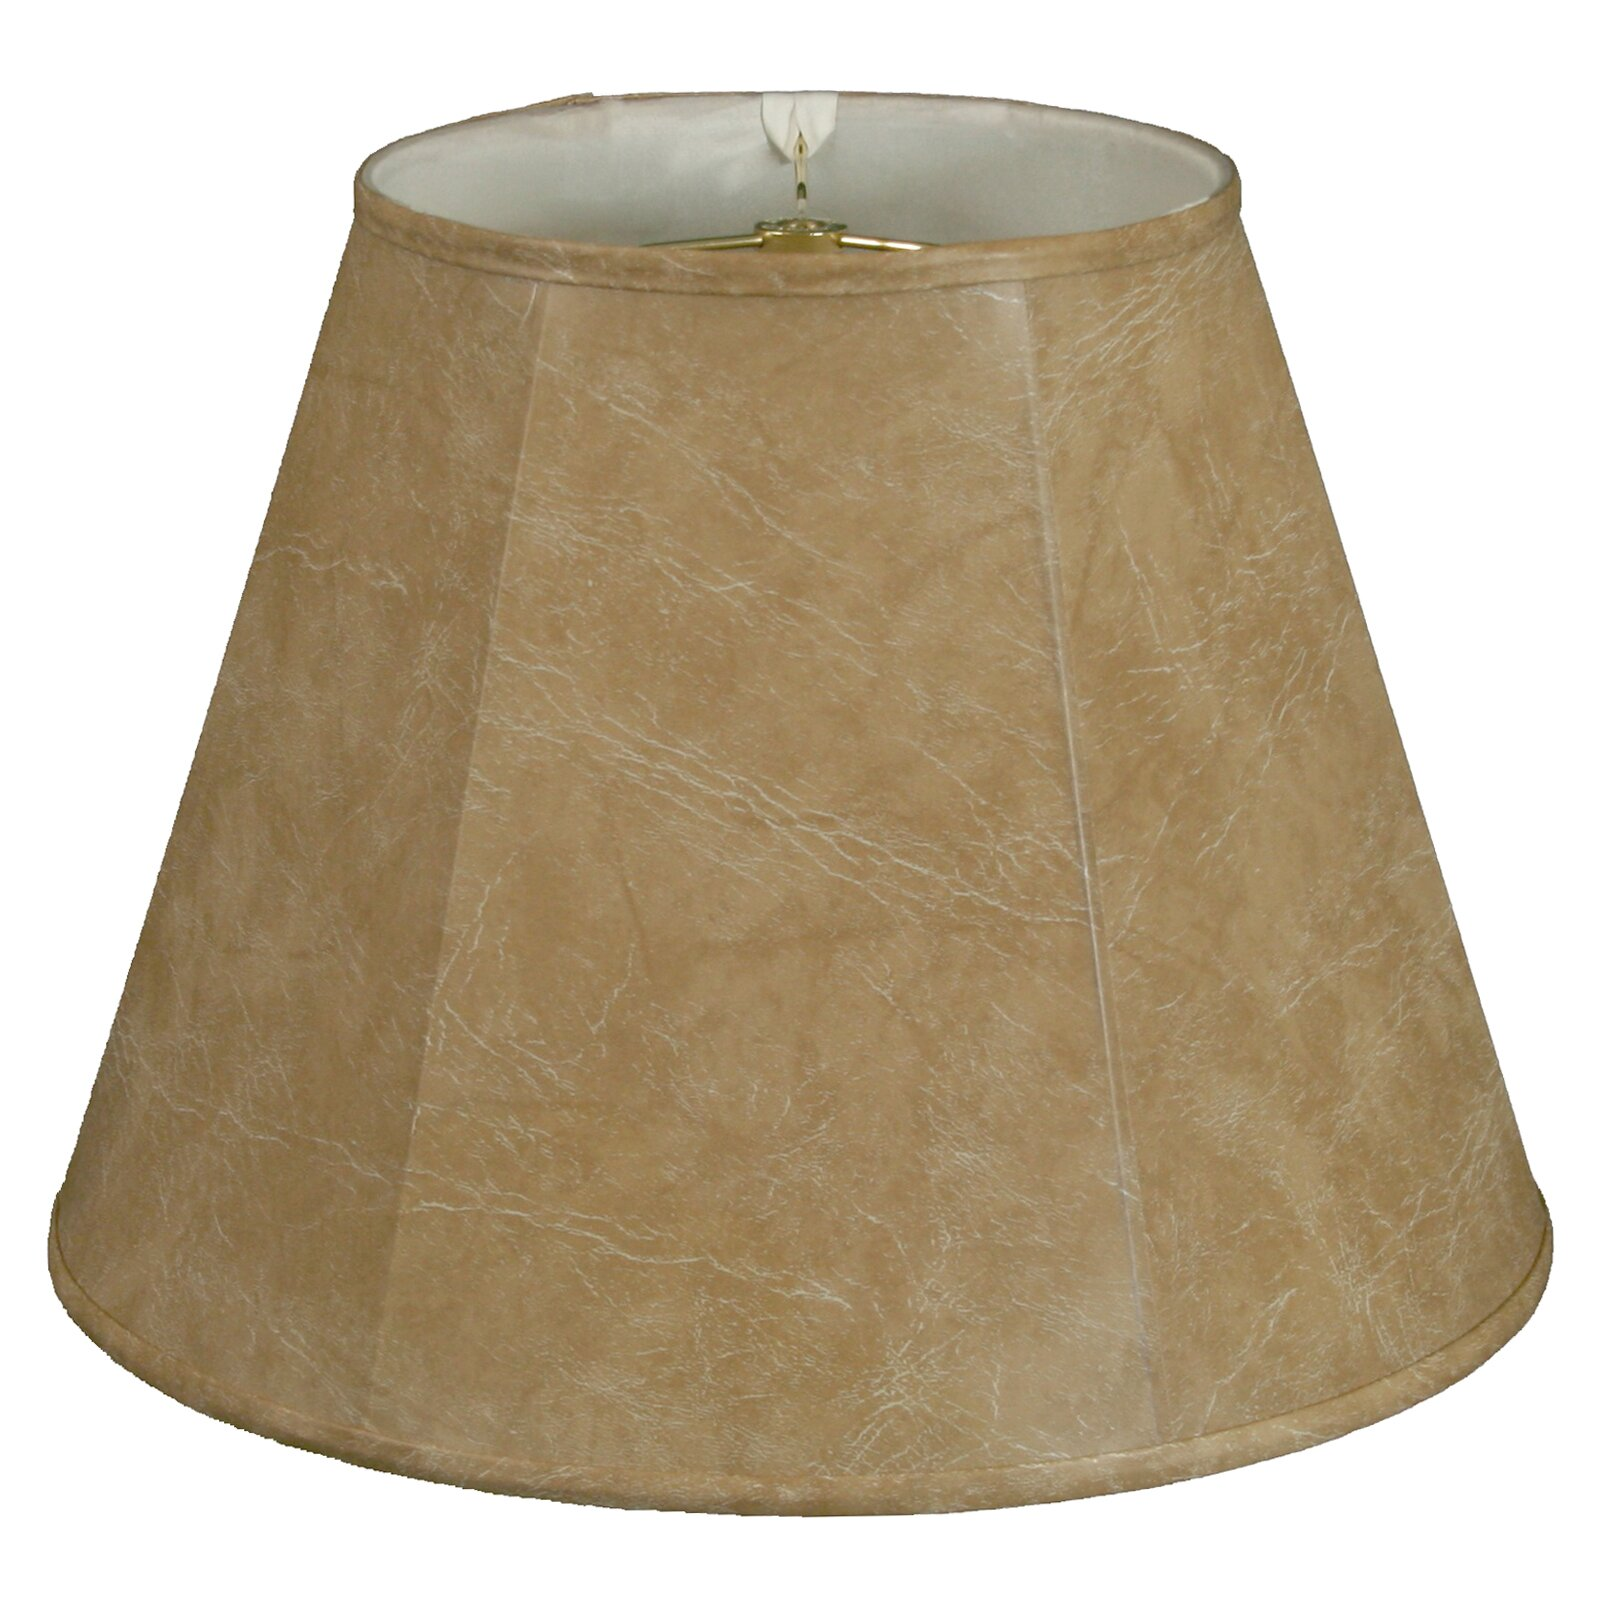 royaldesigns timeless 14 faux leather empire lamp shade. Black Bedroom Furniture Sets. Home Design Ideas